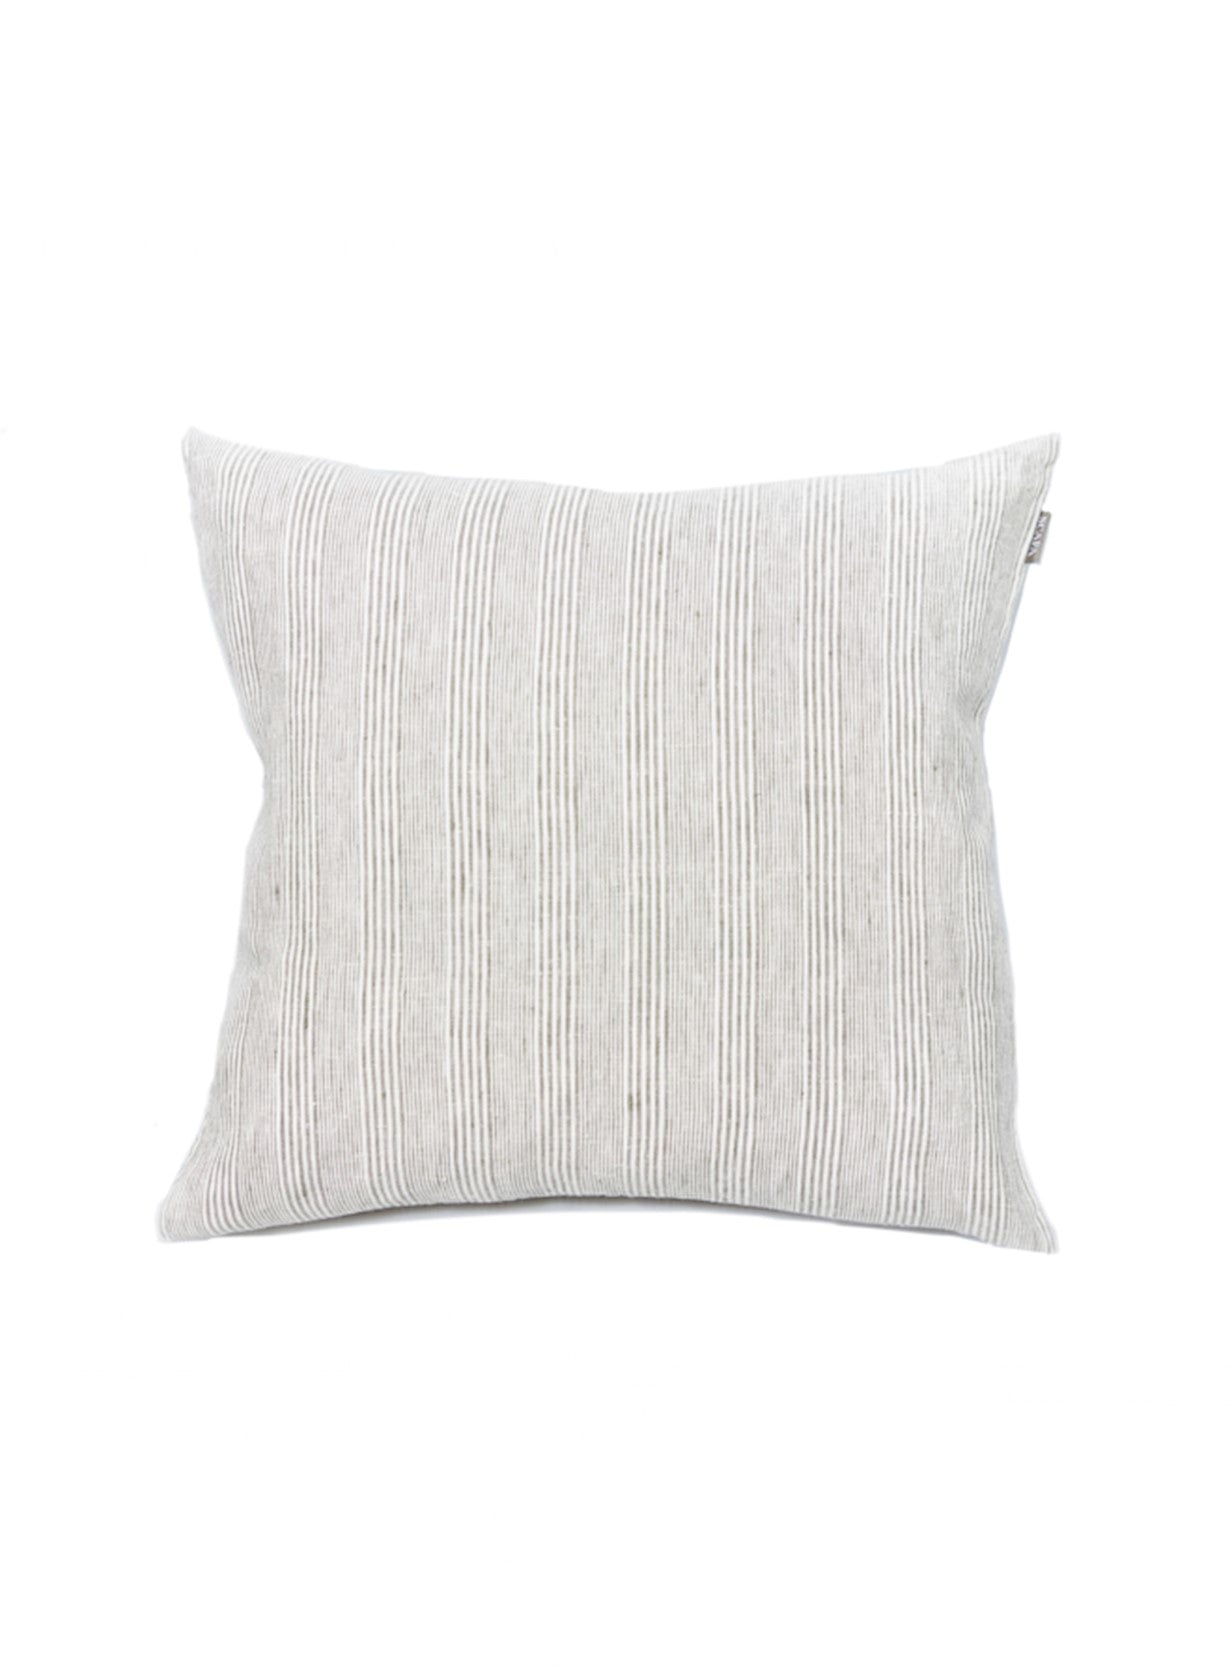 CUSHION COVER 'ANABA' - Cushion Covers - SCAPA HOME - SCAPA HOME OFFICIAL